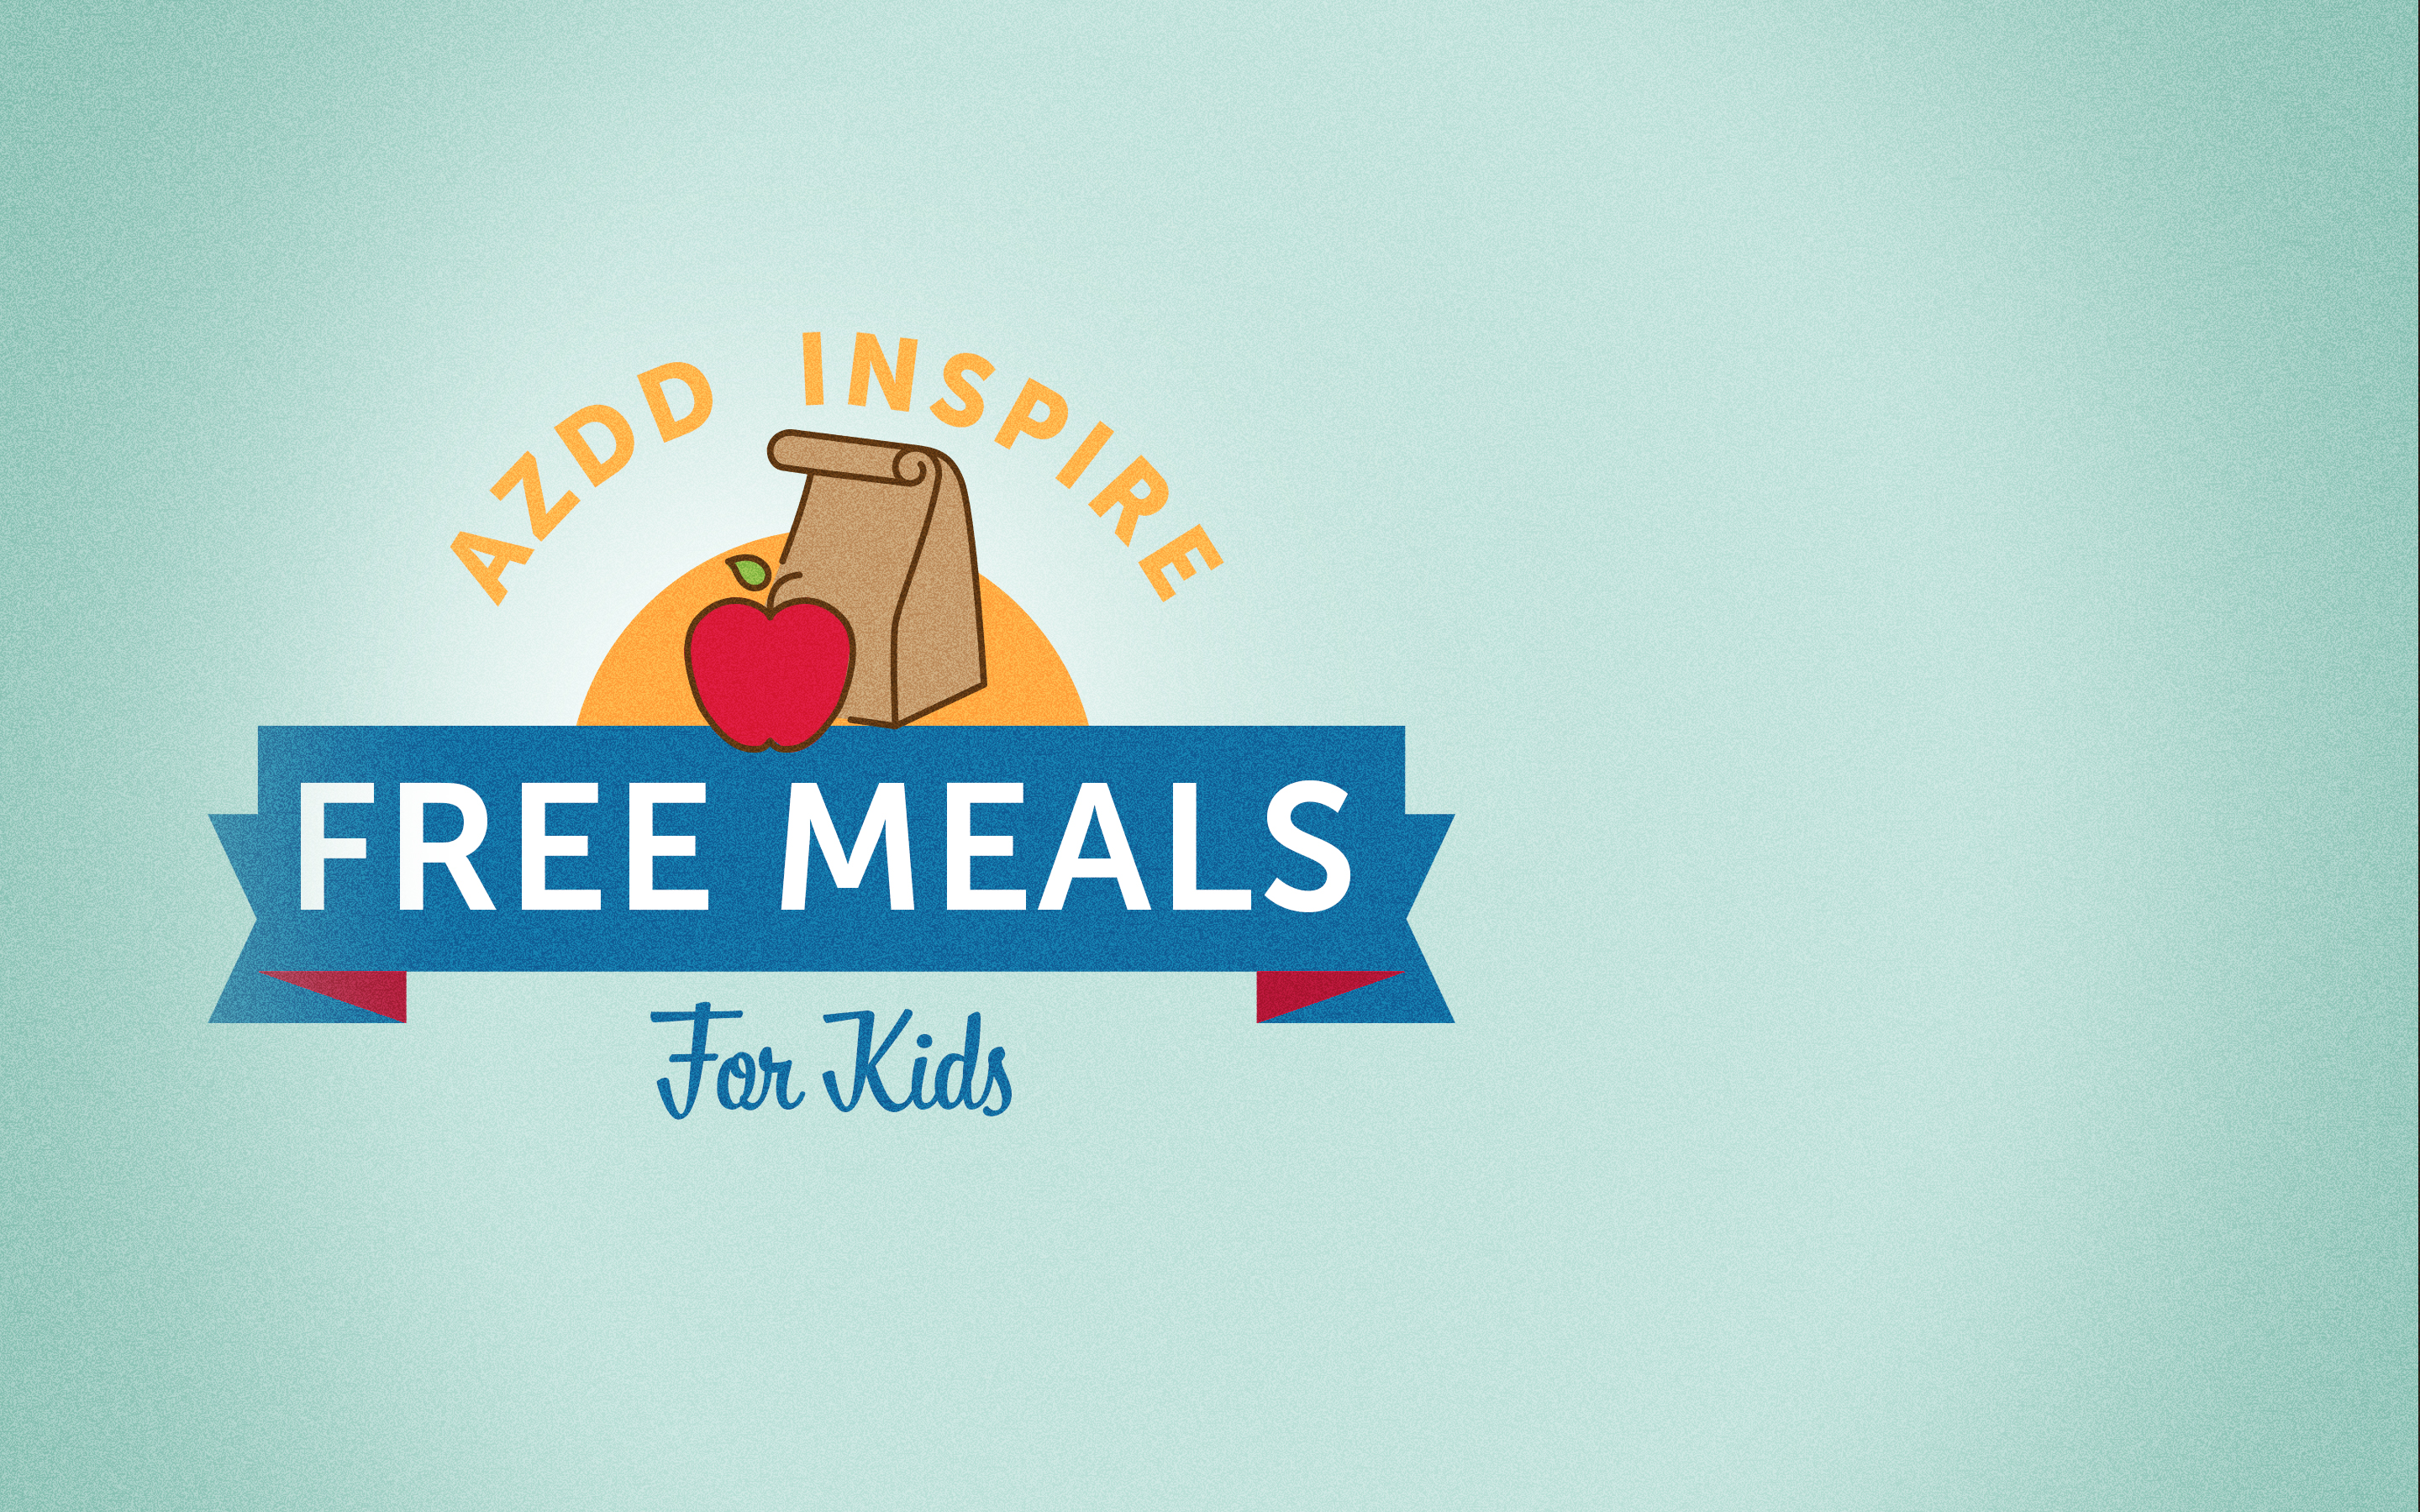 Image: Free Meals for Kids